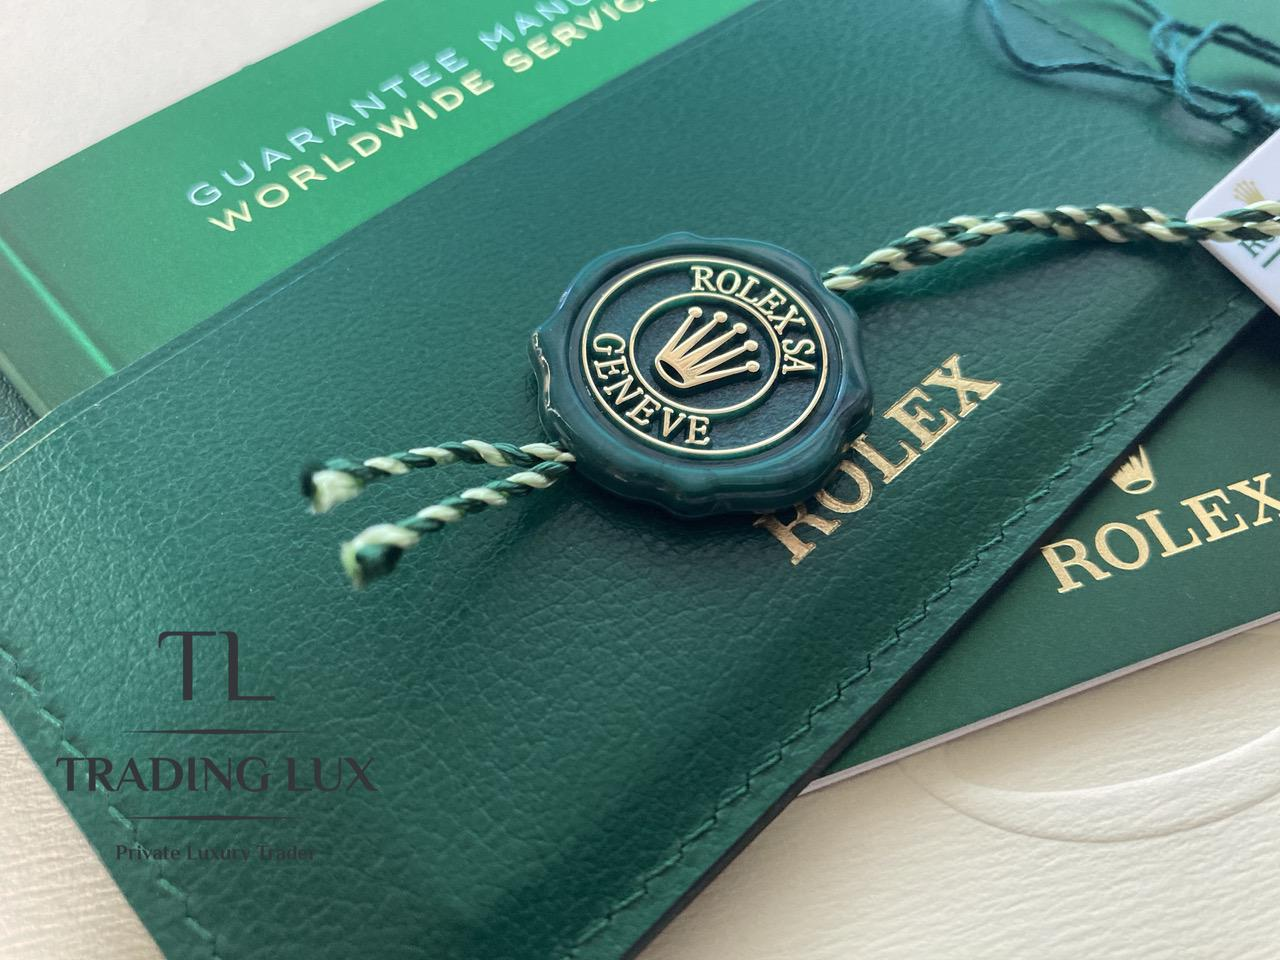 Rolex-Daytona-116503-Gold-Steel-1-1